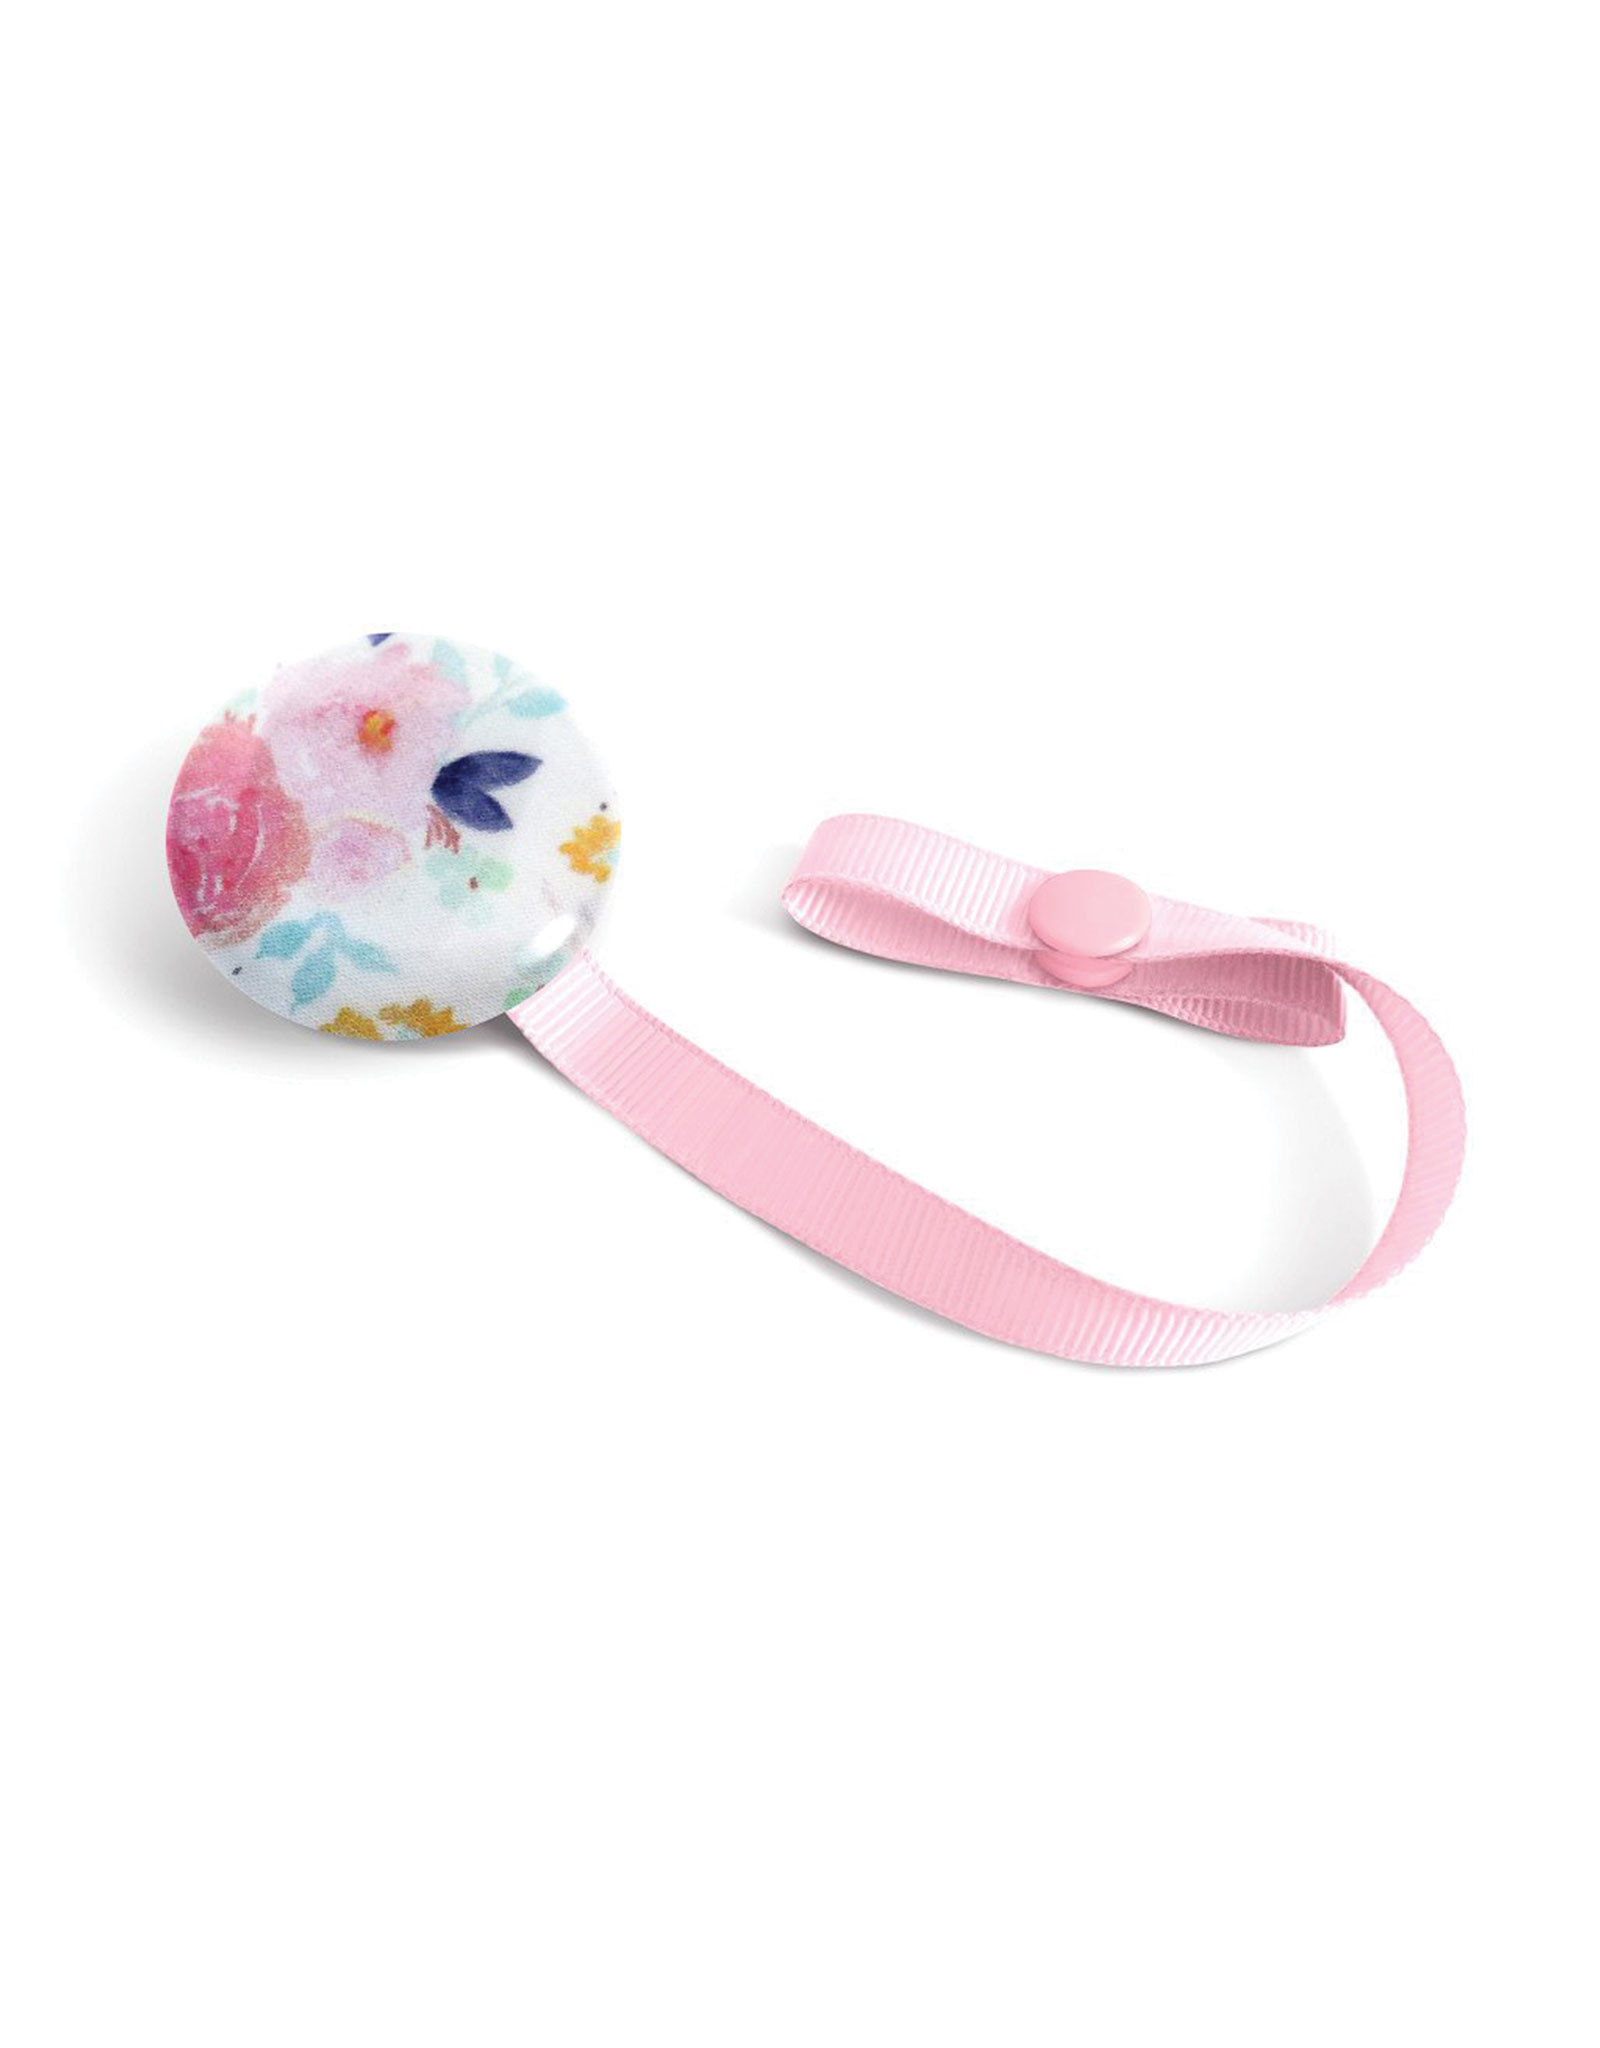 Loliko Pacifier Clip - Loliko - Pink Flowers